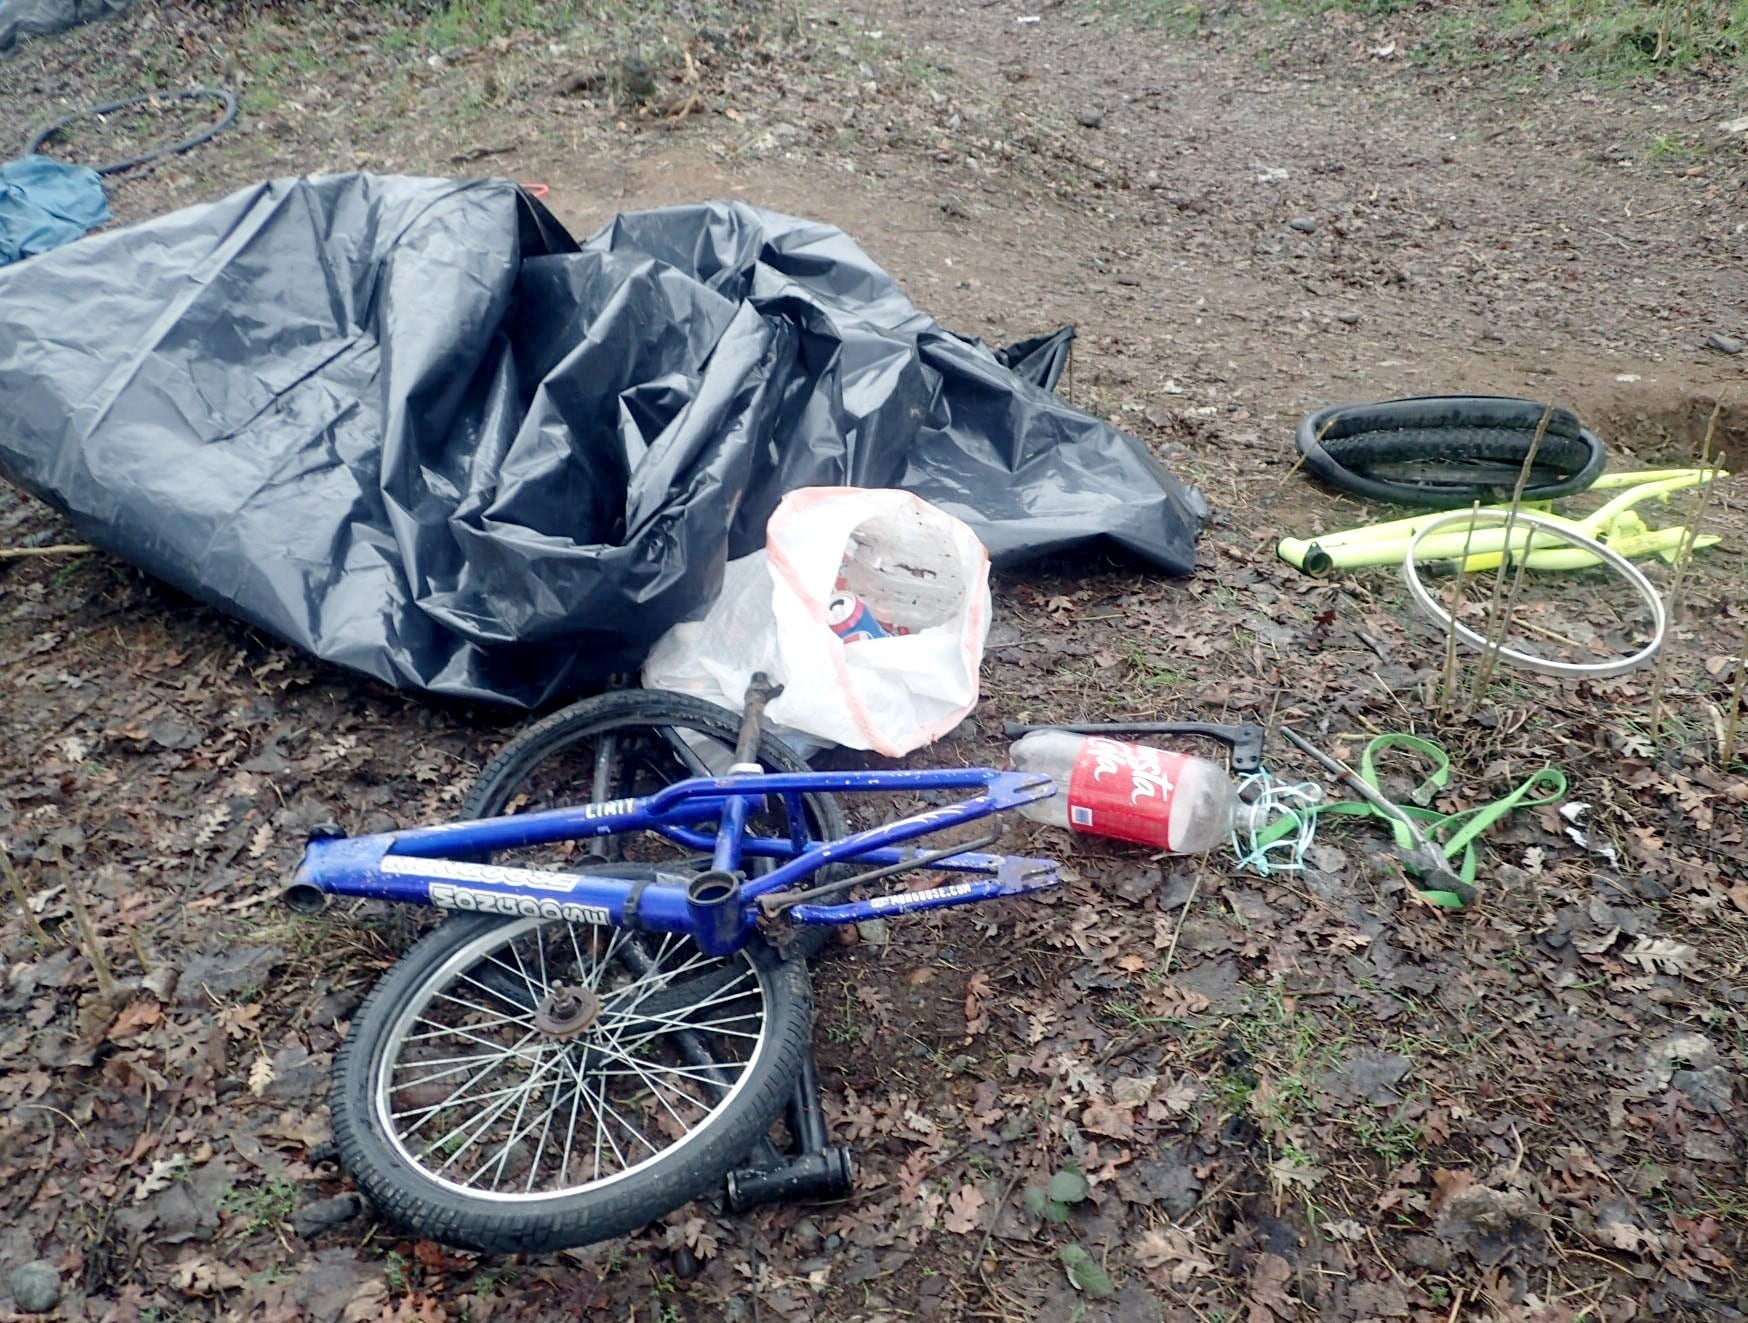 Bike parts and tarps were found near the Sacramento River on Jan. 8, 2019, and removed by cleanup workers.